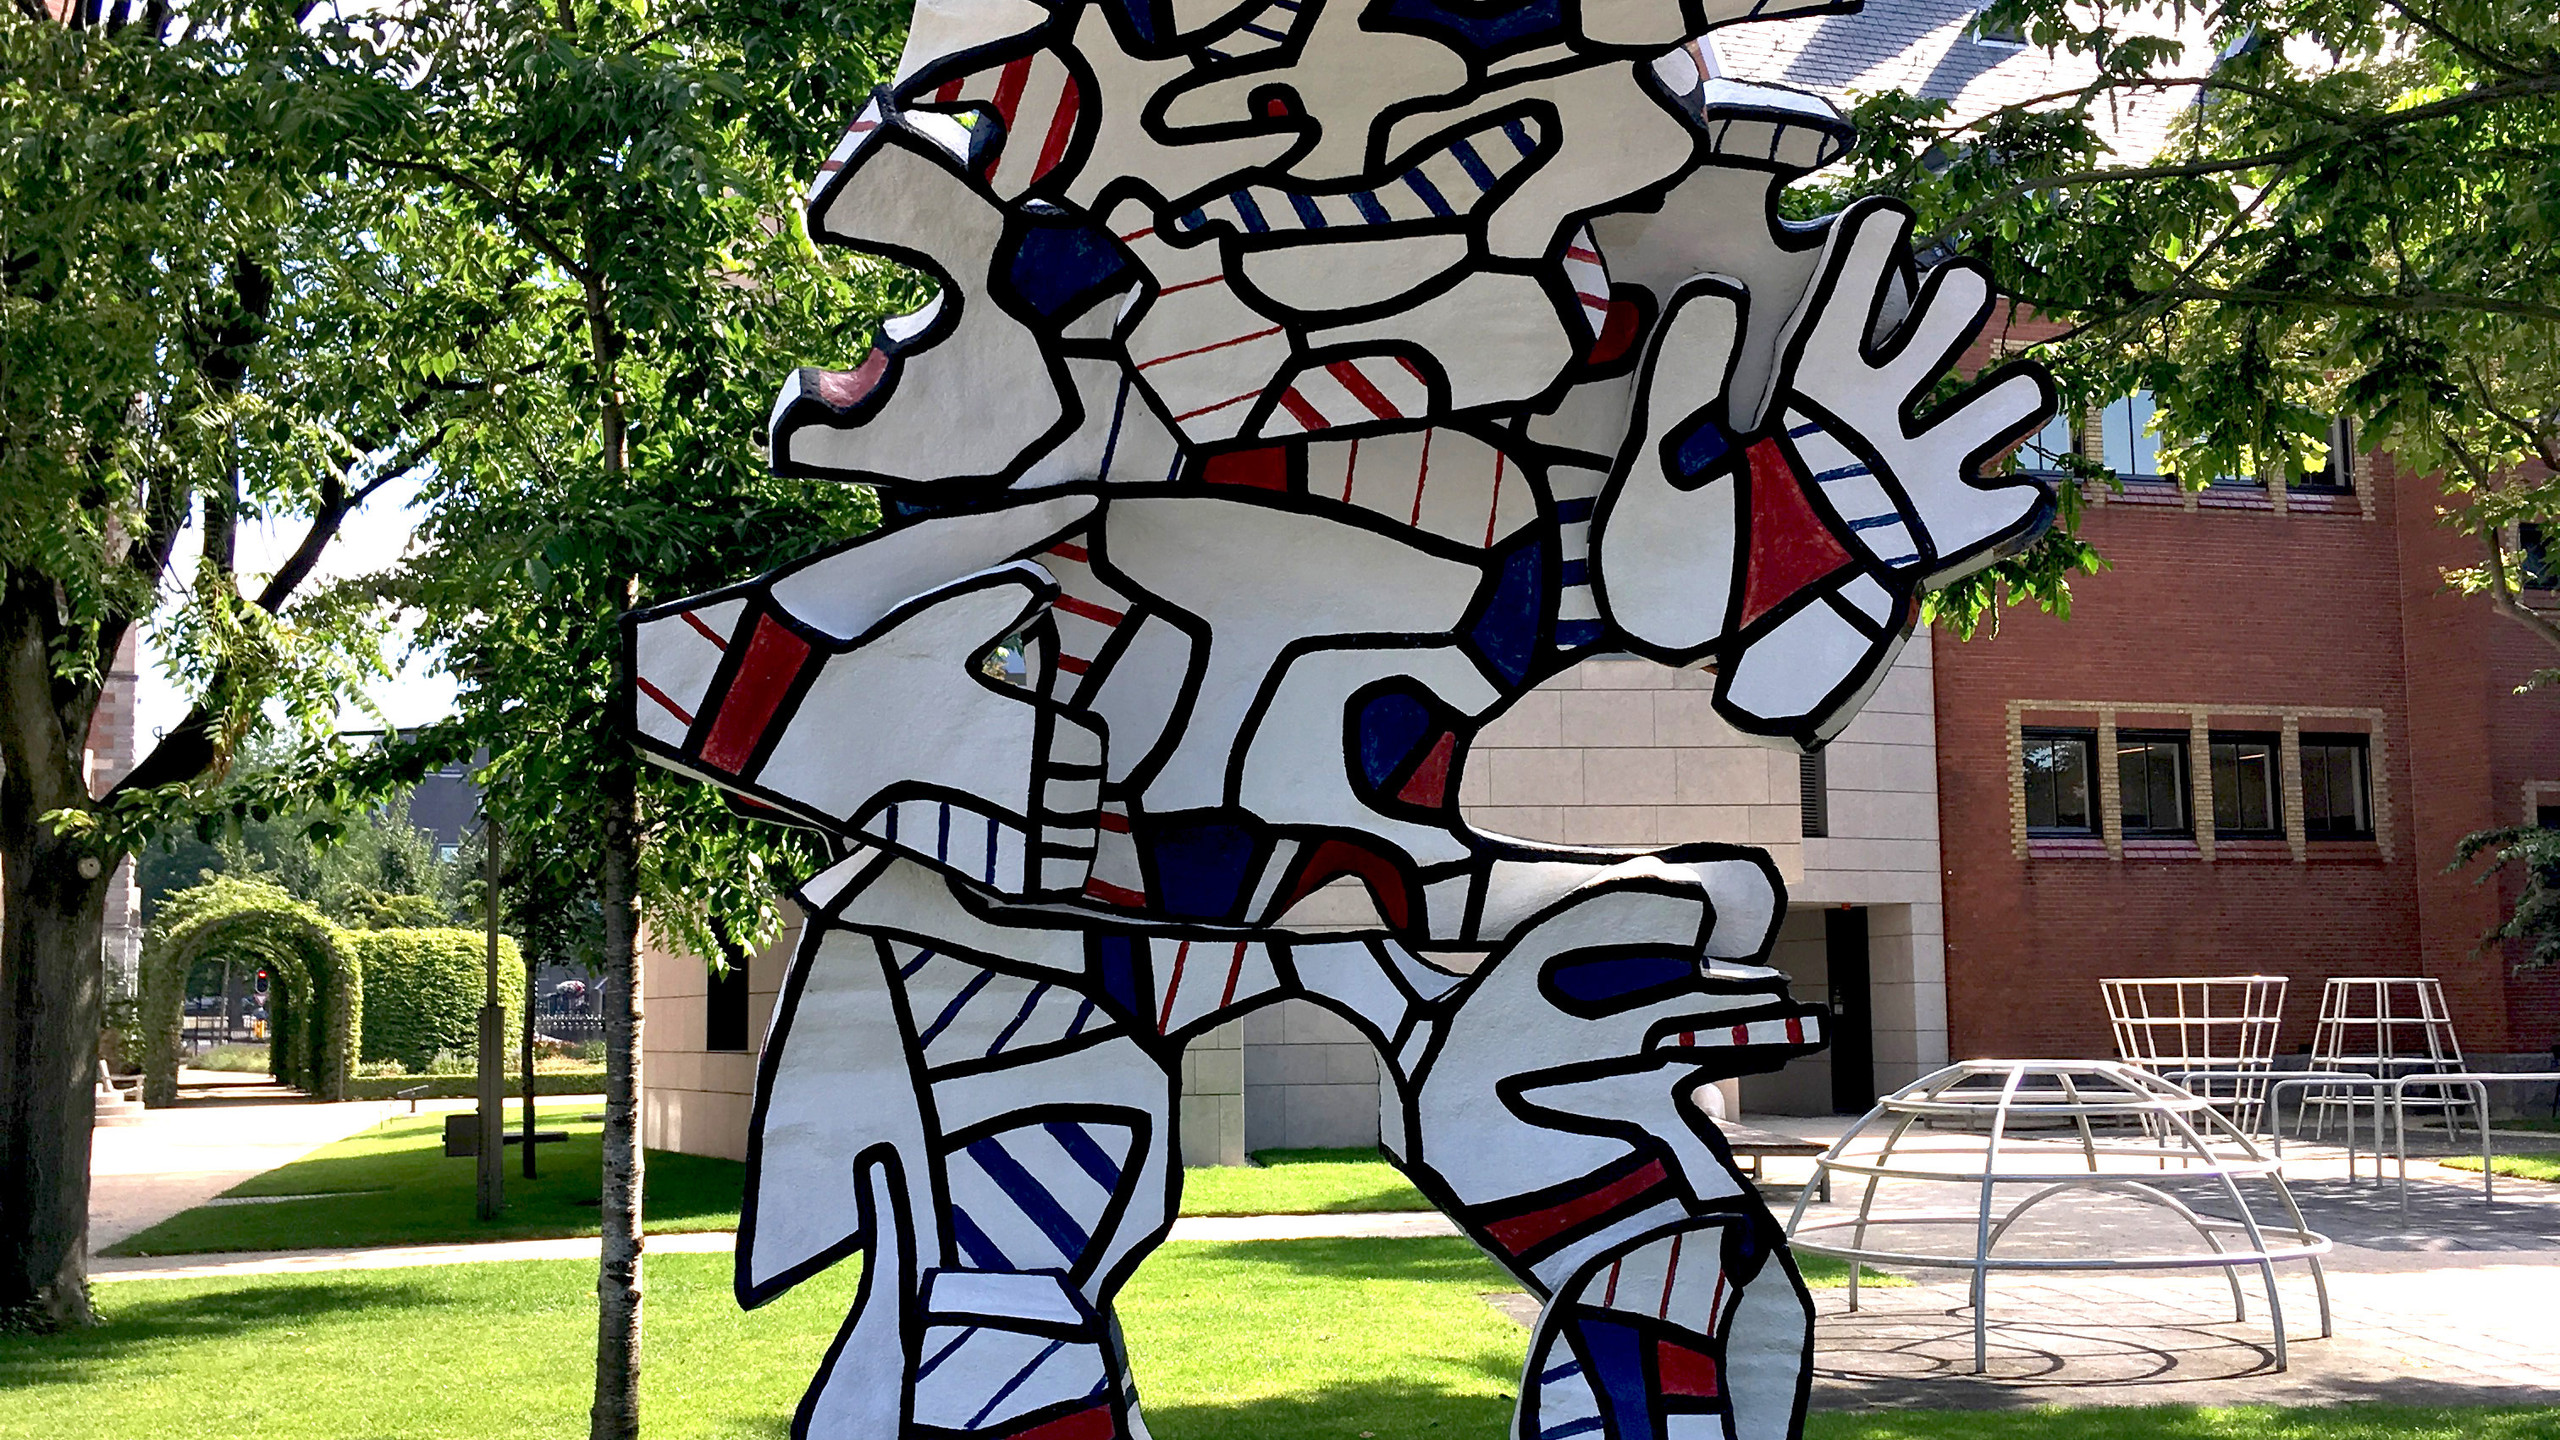 This imposing figure, conceived for the never executed Welcome Parade commission for the National Gallery of Art in Washington, greets visitors with a courtly bow. The name Dubuffet gave the figure is untranslatable. Alongside his visual art, the artist enjoyed playing with language and combined poetry with discourses on his own work.